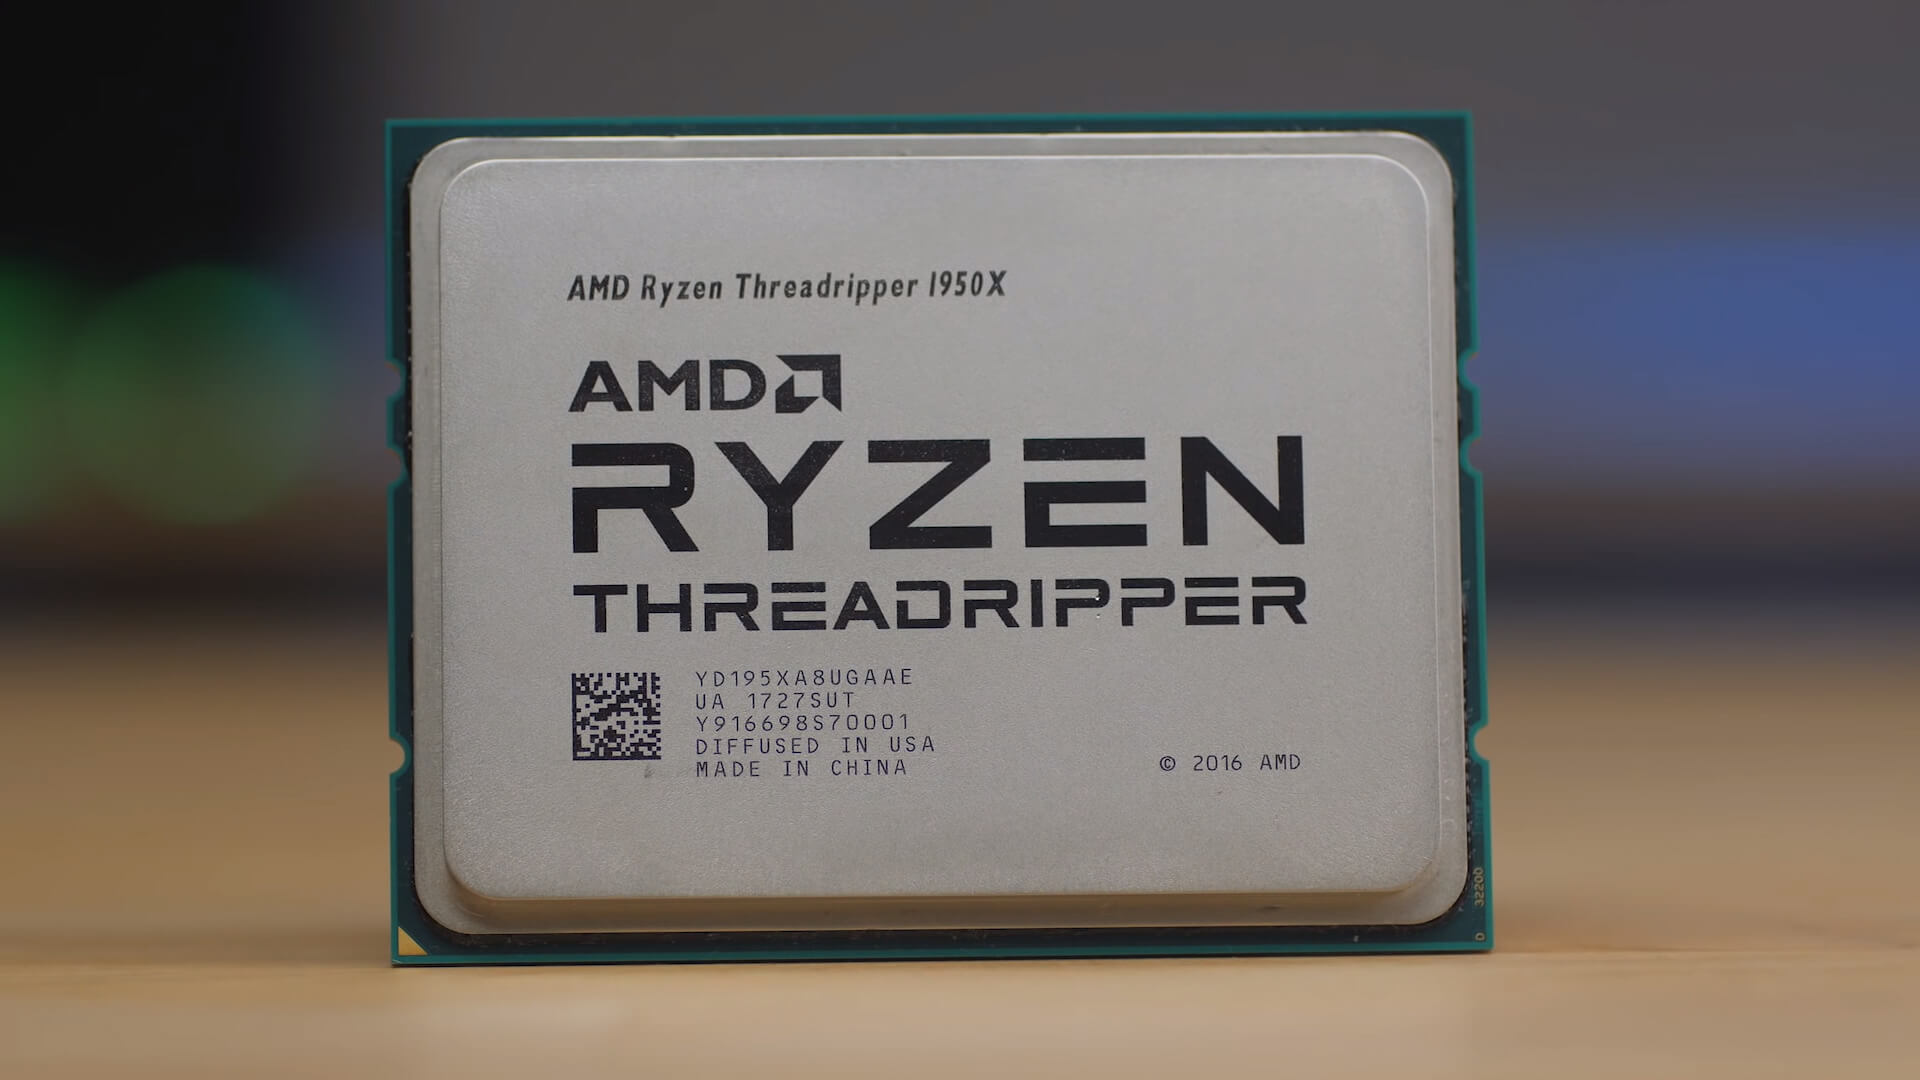 AMD-Ryzen-Threadripper-1950X-Processor-With-16-Cores-And-32-Threads